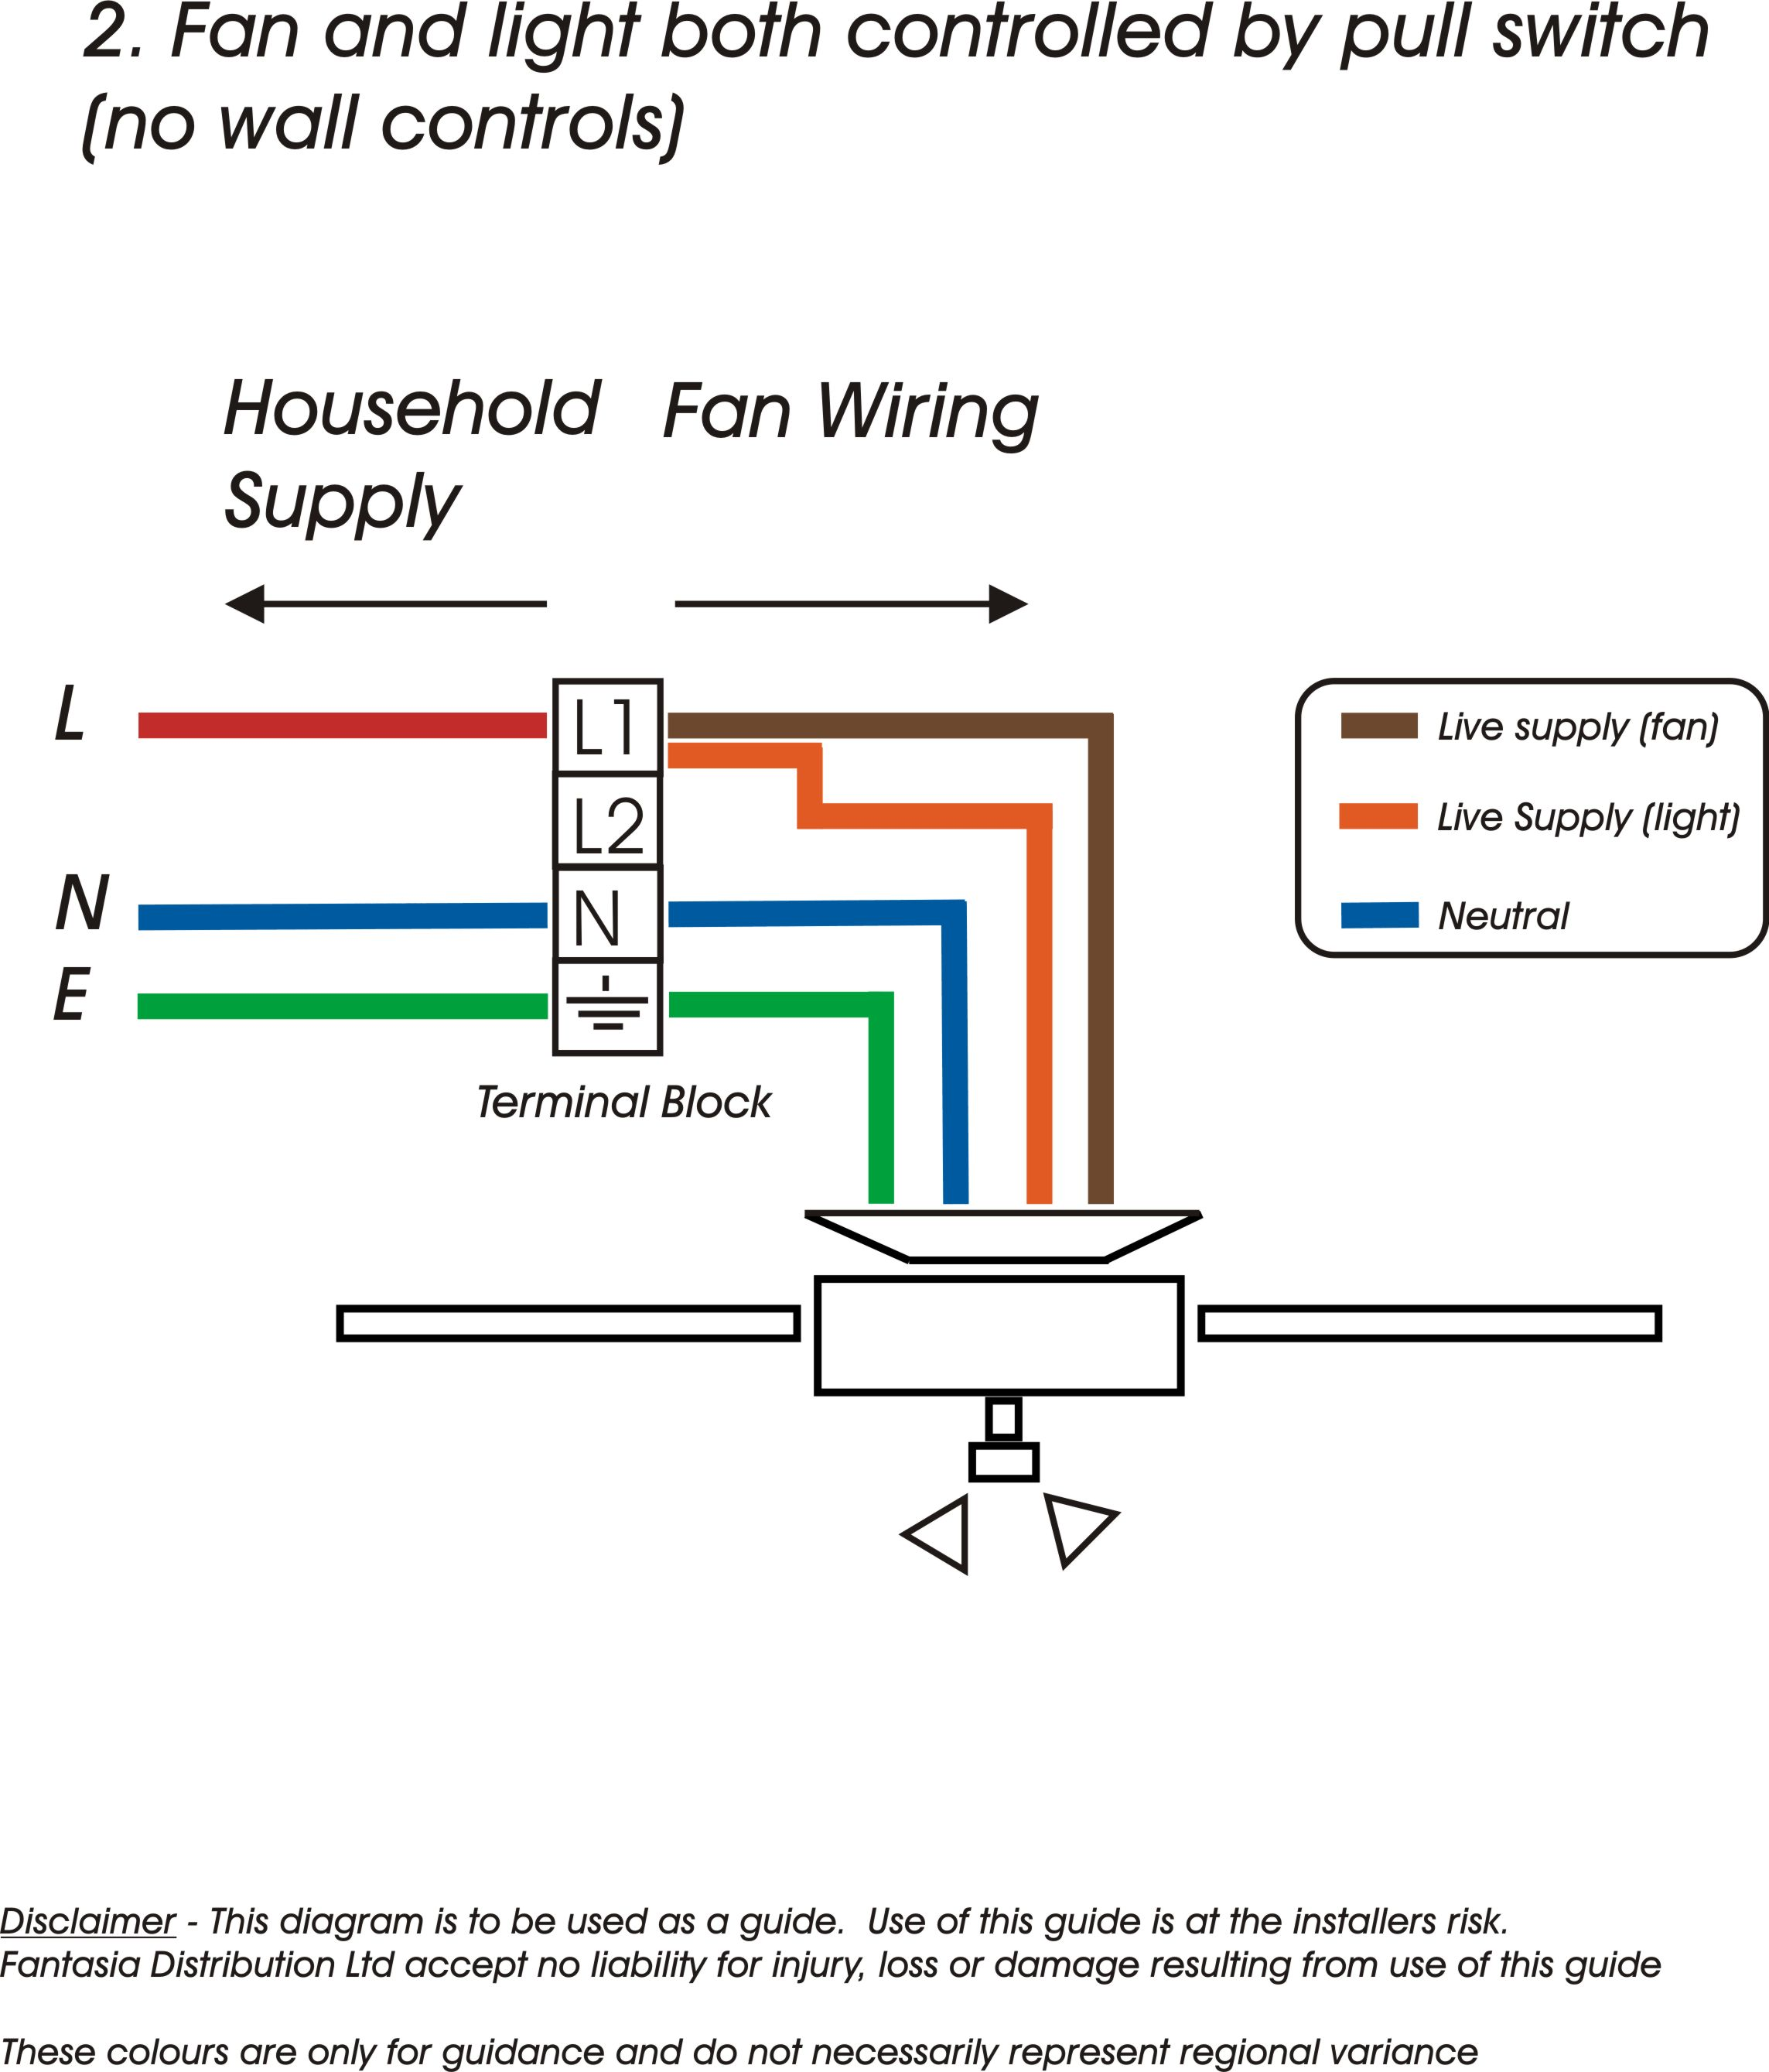 wiring ceiling fans 2?resize=800%2C937 hampton bay ceiling fan motor wiring diagram integralbook com hampton bay ceiling fan wiring diagram red wire at webbmarketing.co